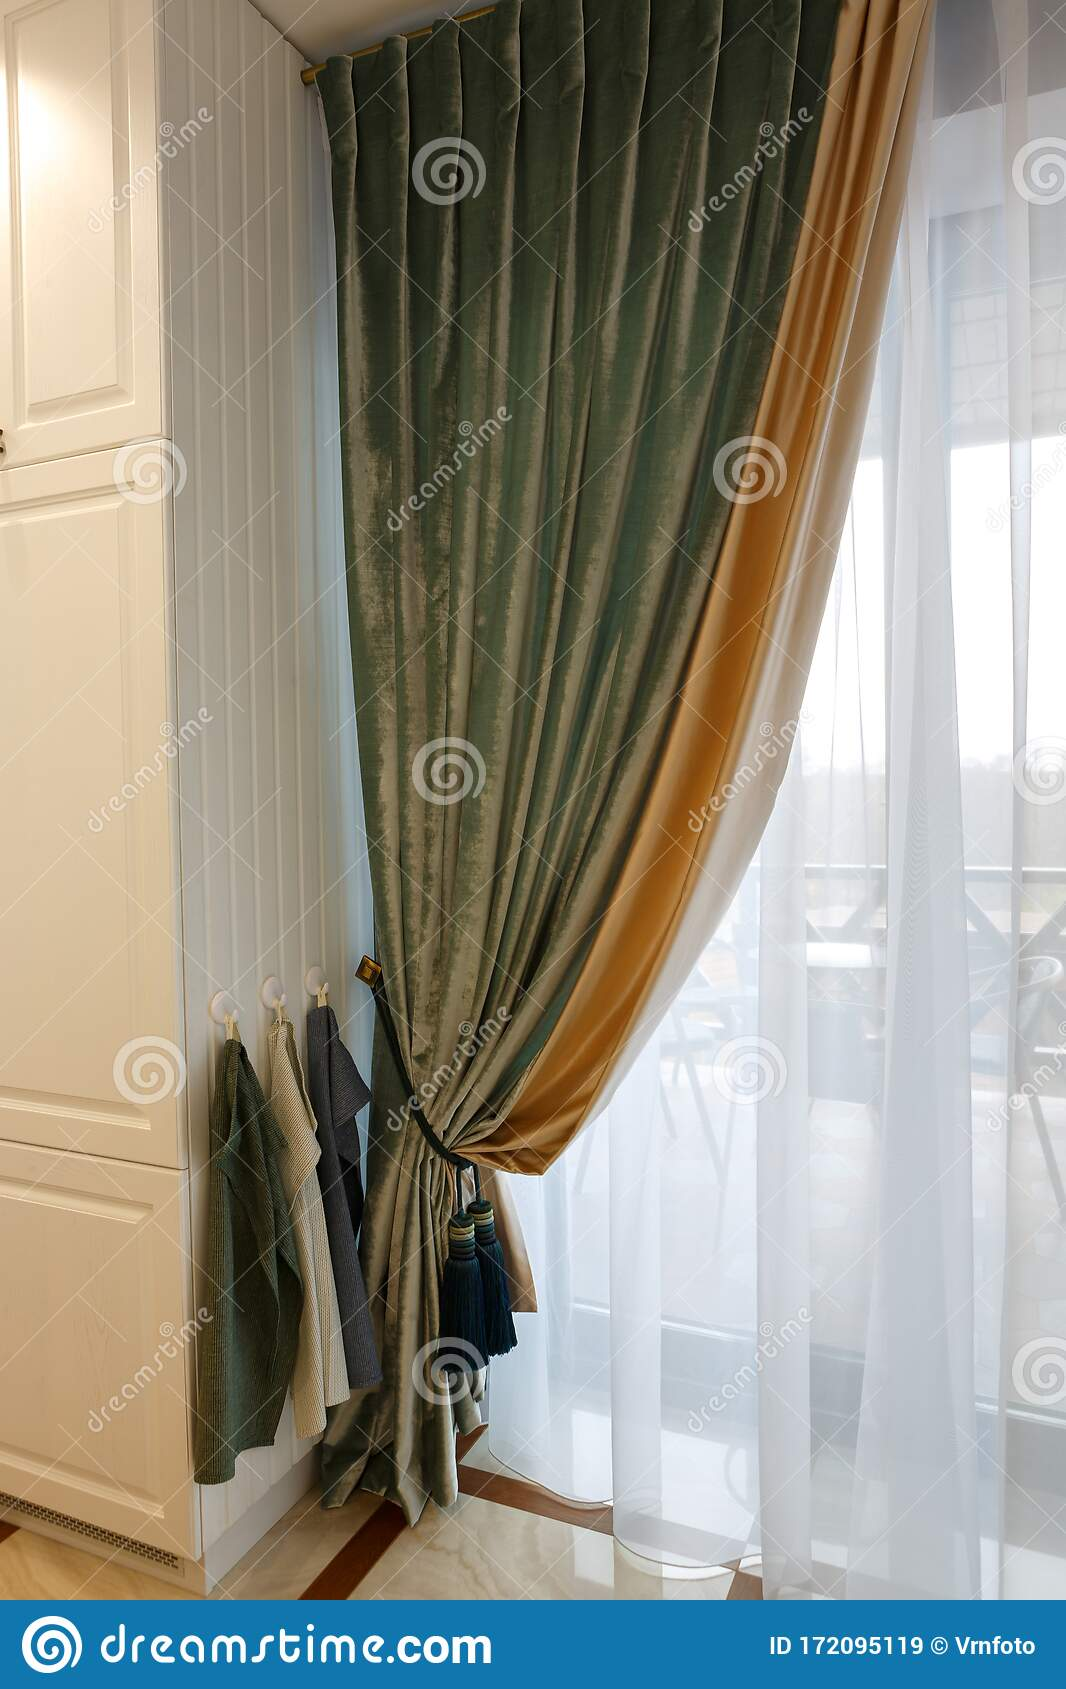 The Interior Of The Living Room Beautiful Curtains And Drapes On The Window Stock Image Image Of Modern Color 172095119